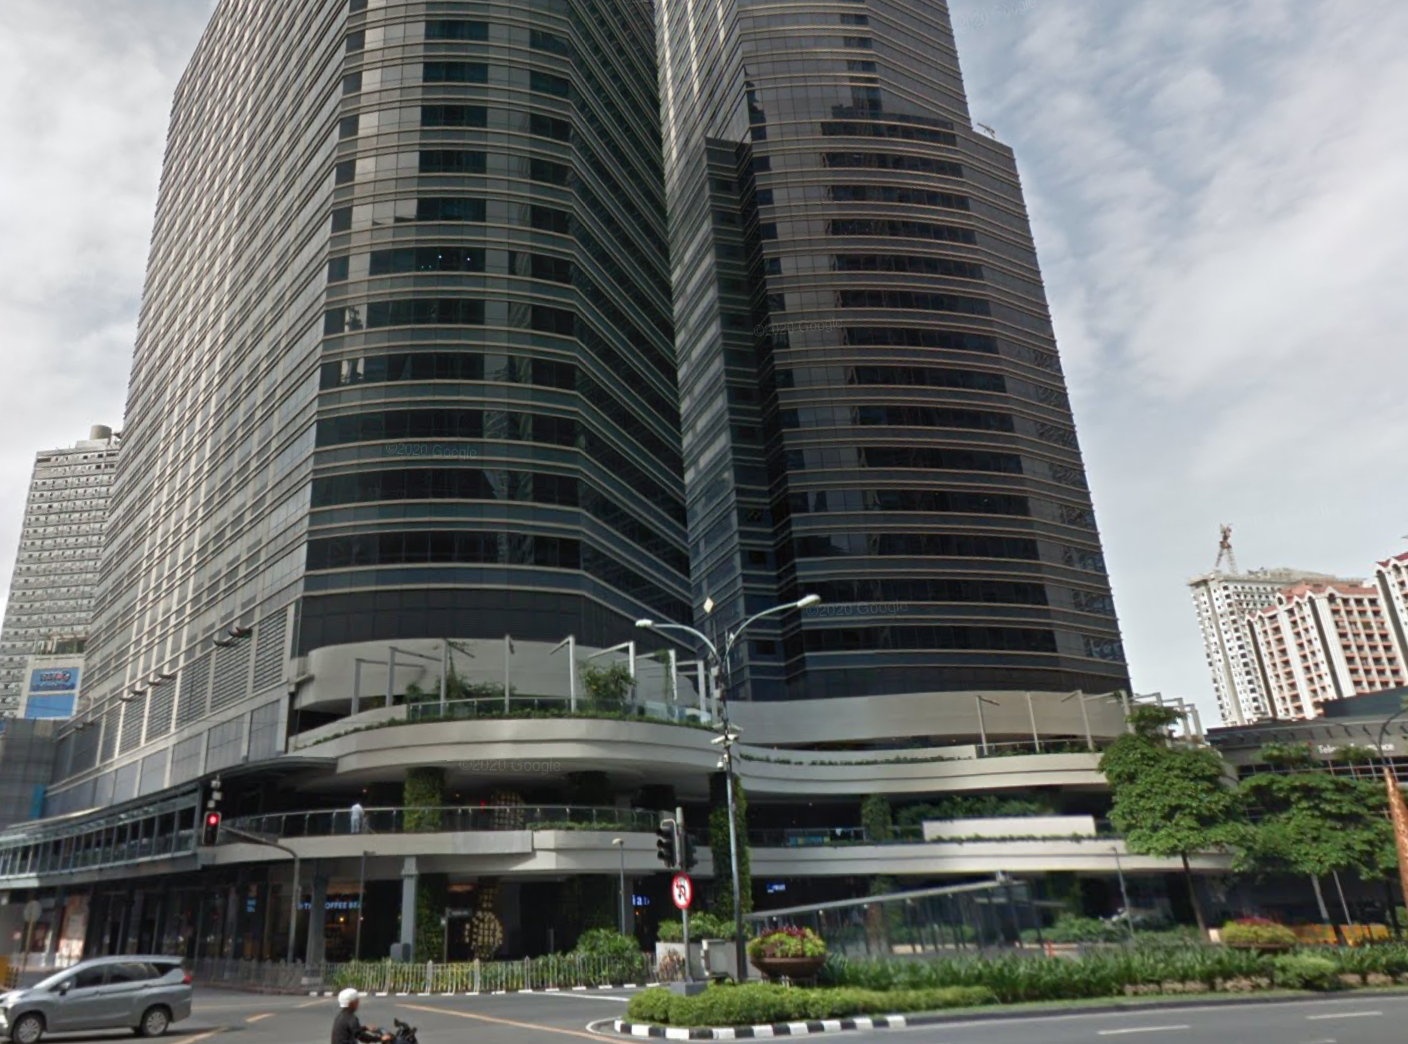 Ayala North Exchange, a property in the initial portfolio of Ayala Land REIT. (Photo: Google Maps)